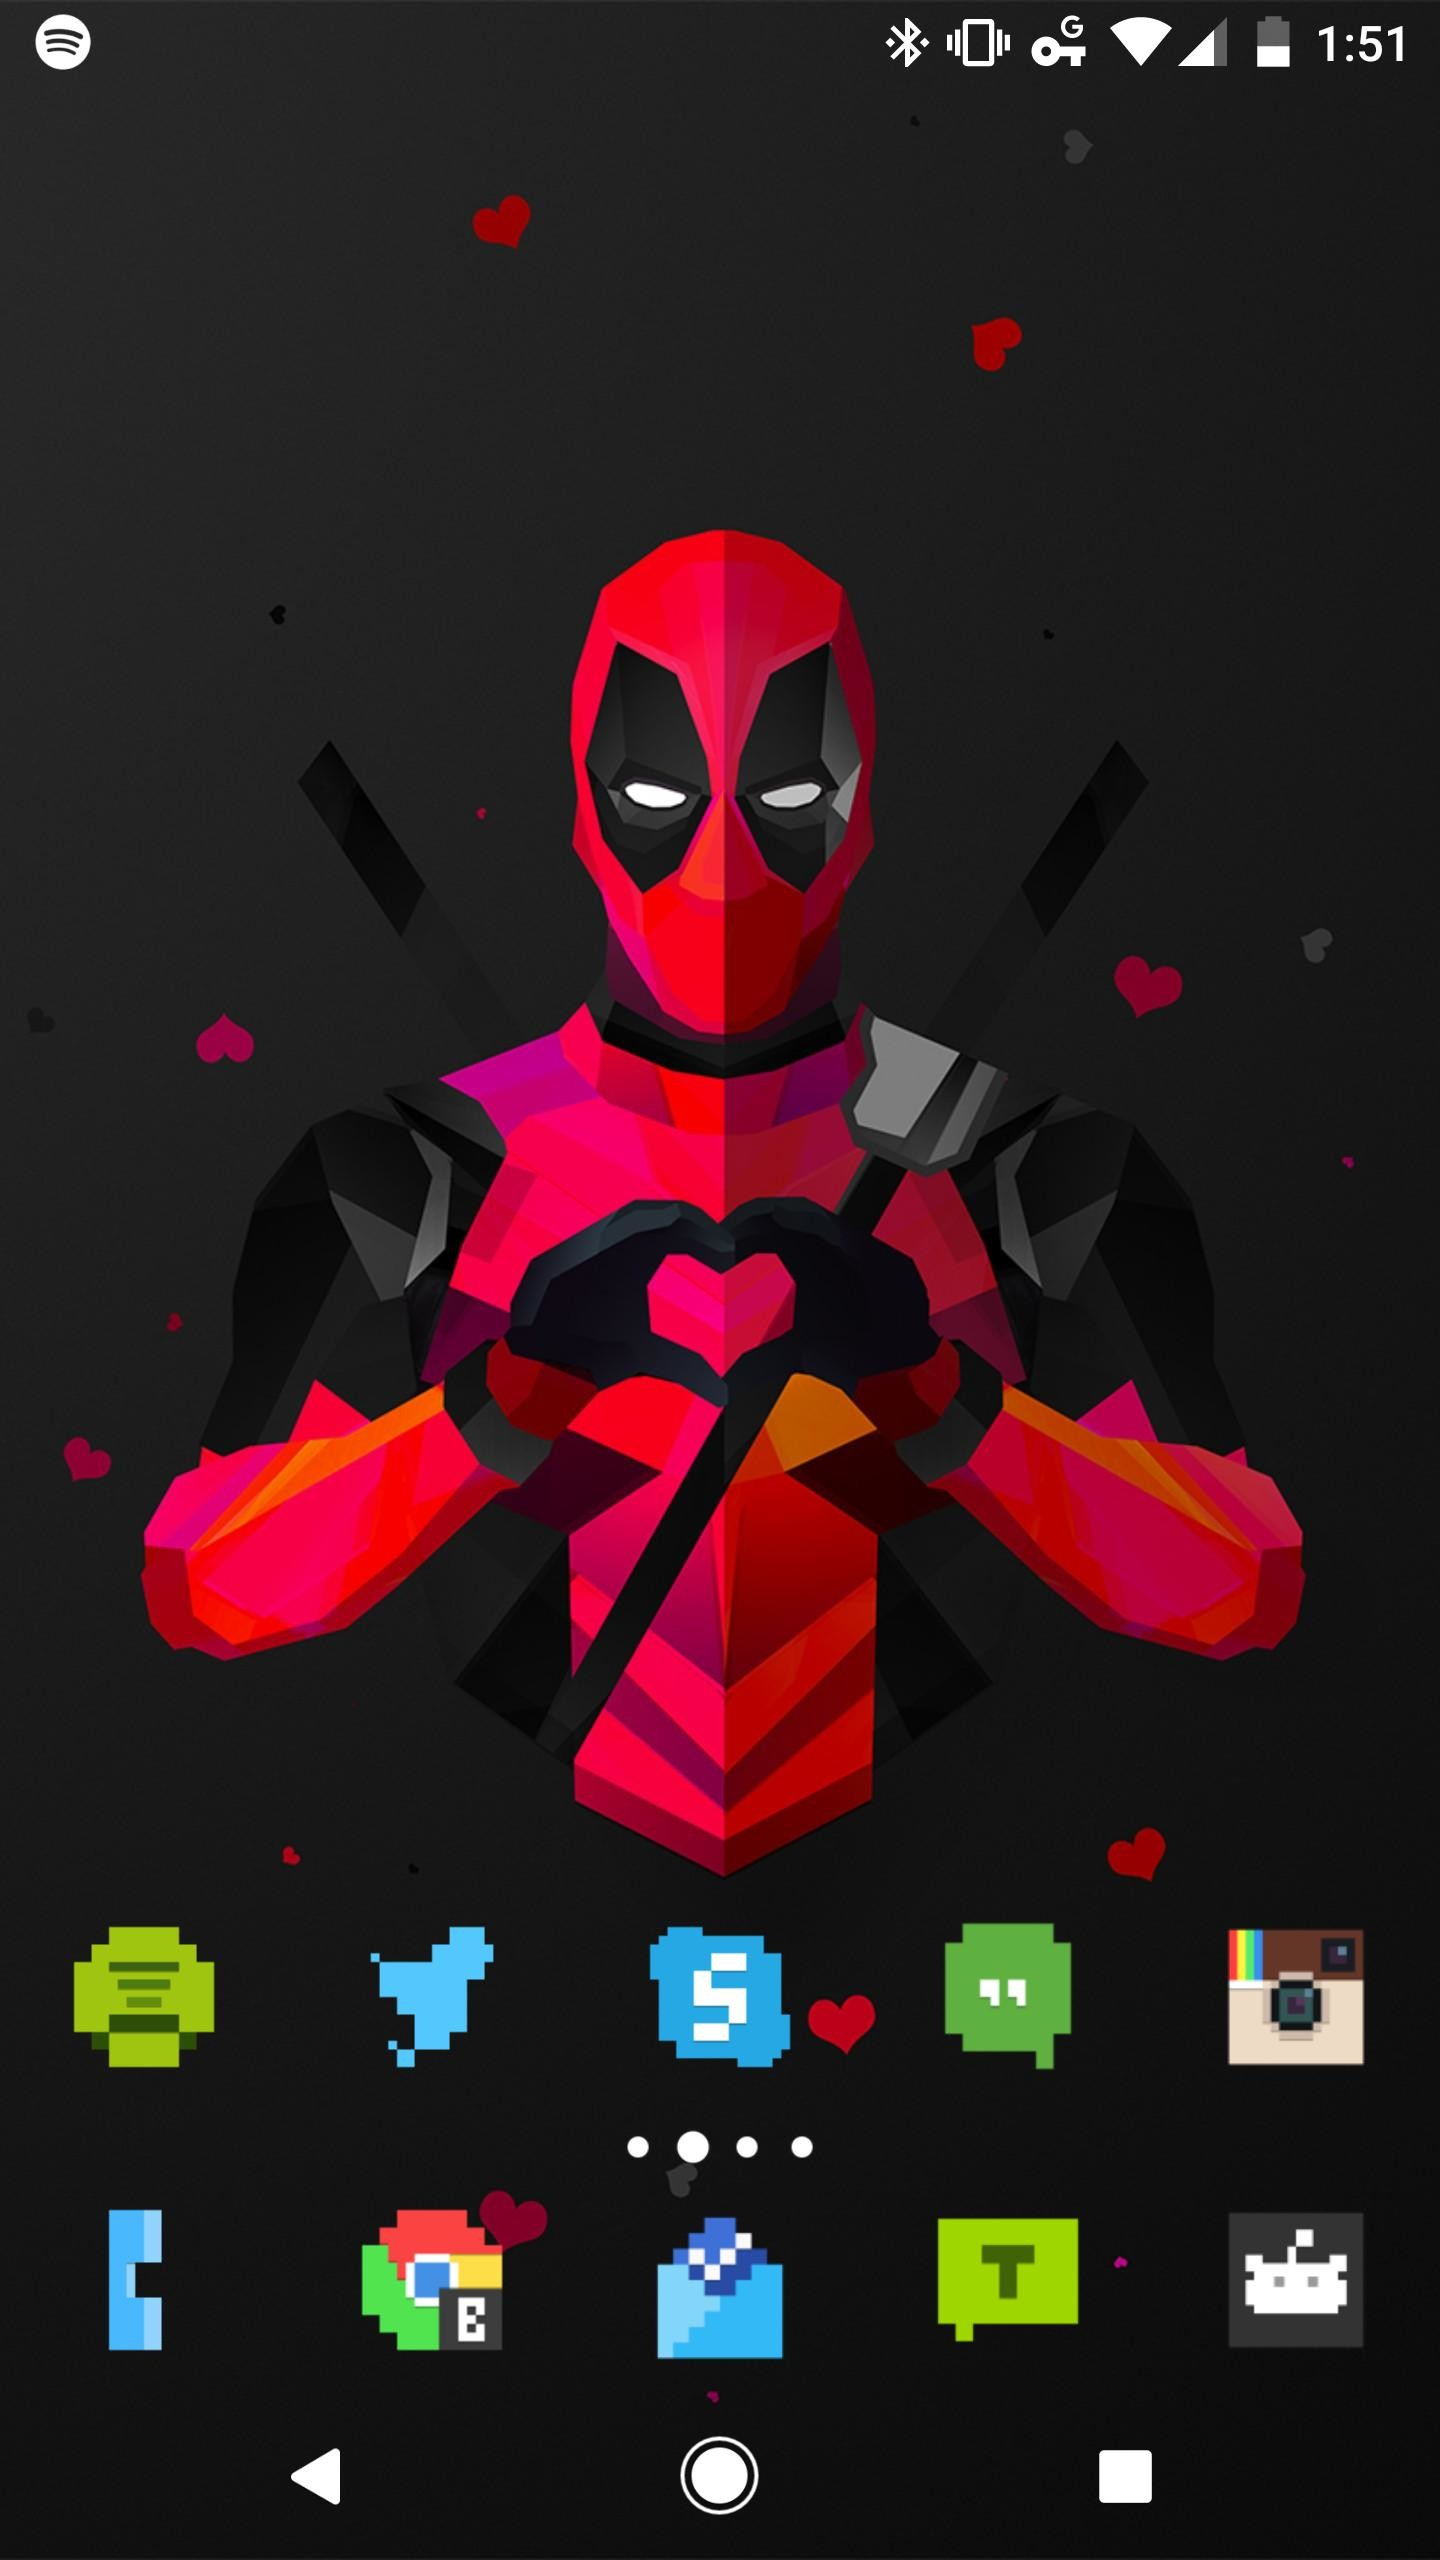 Amoled Wallpapers 81 Images